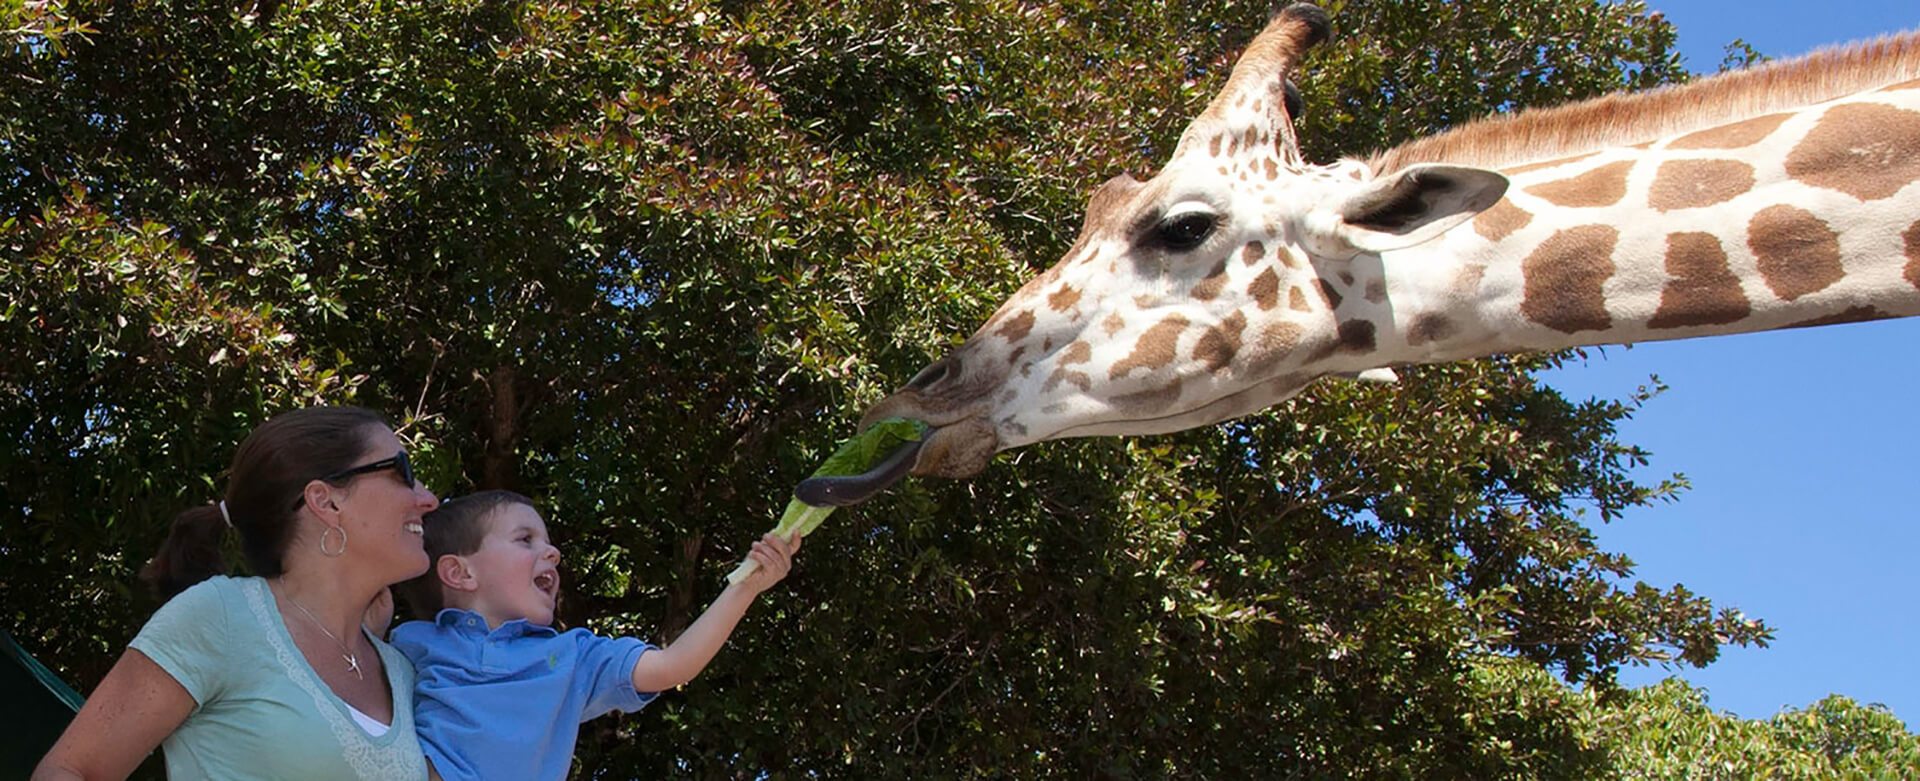 child feeding giraffe